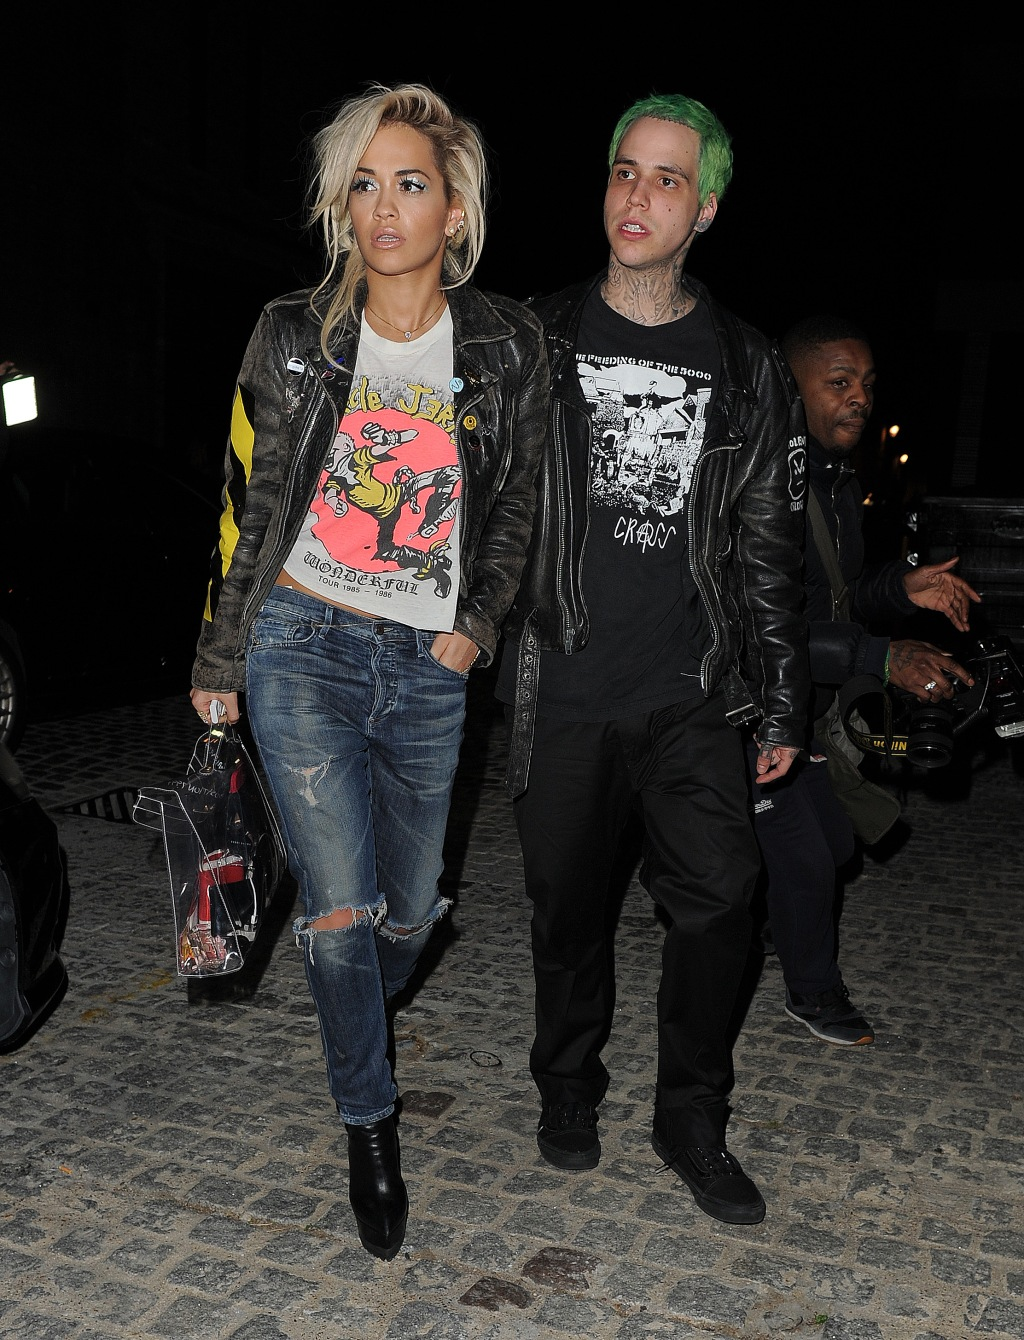 Rita Ora and boyfriend Ricky Hil at the Chiltern Firehouse